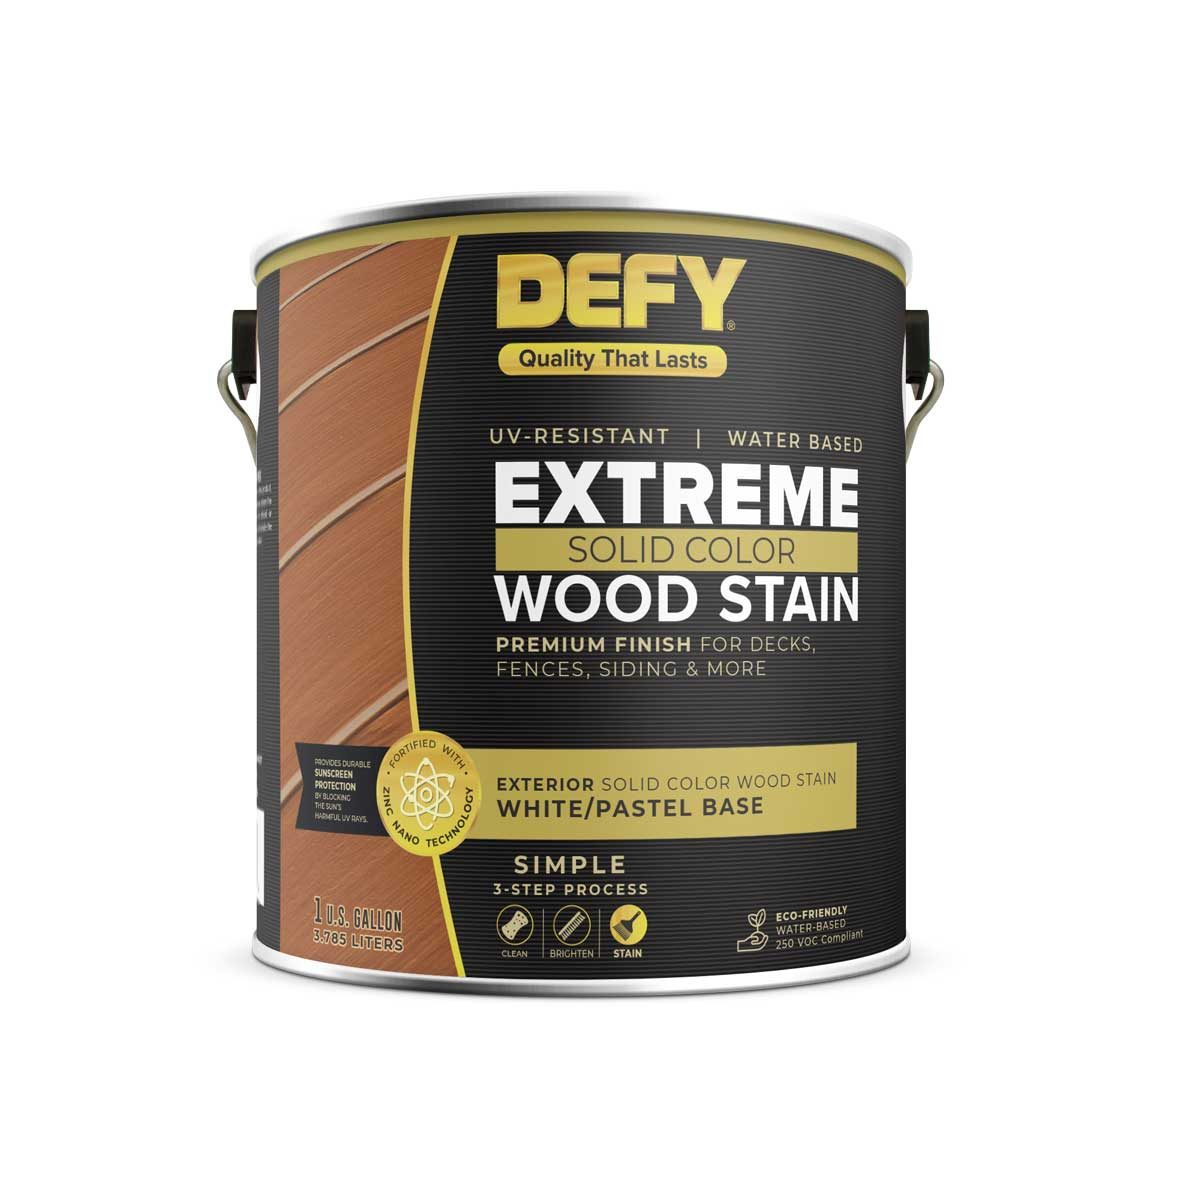 Can of Defy wood stain